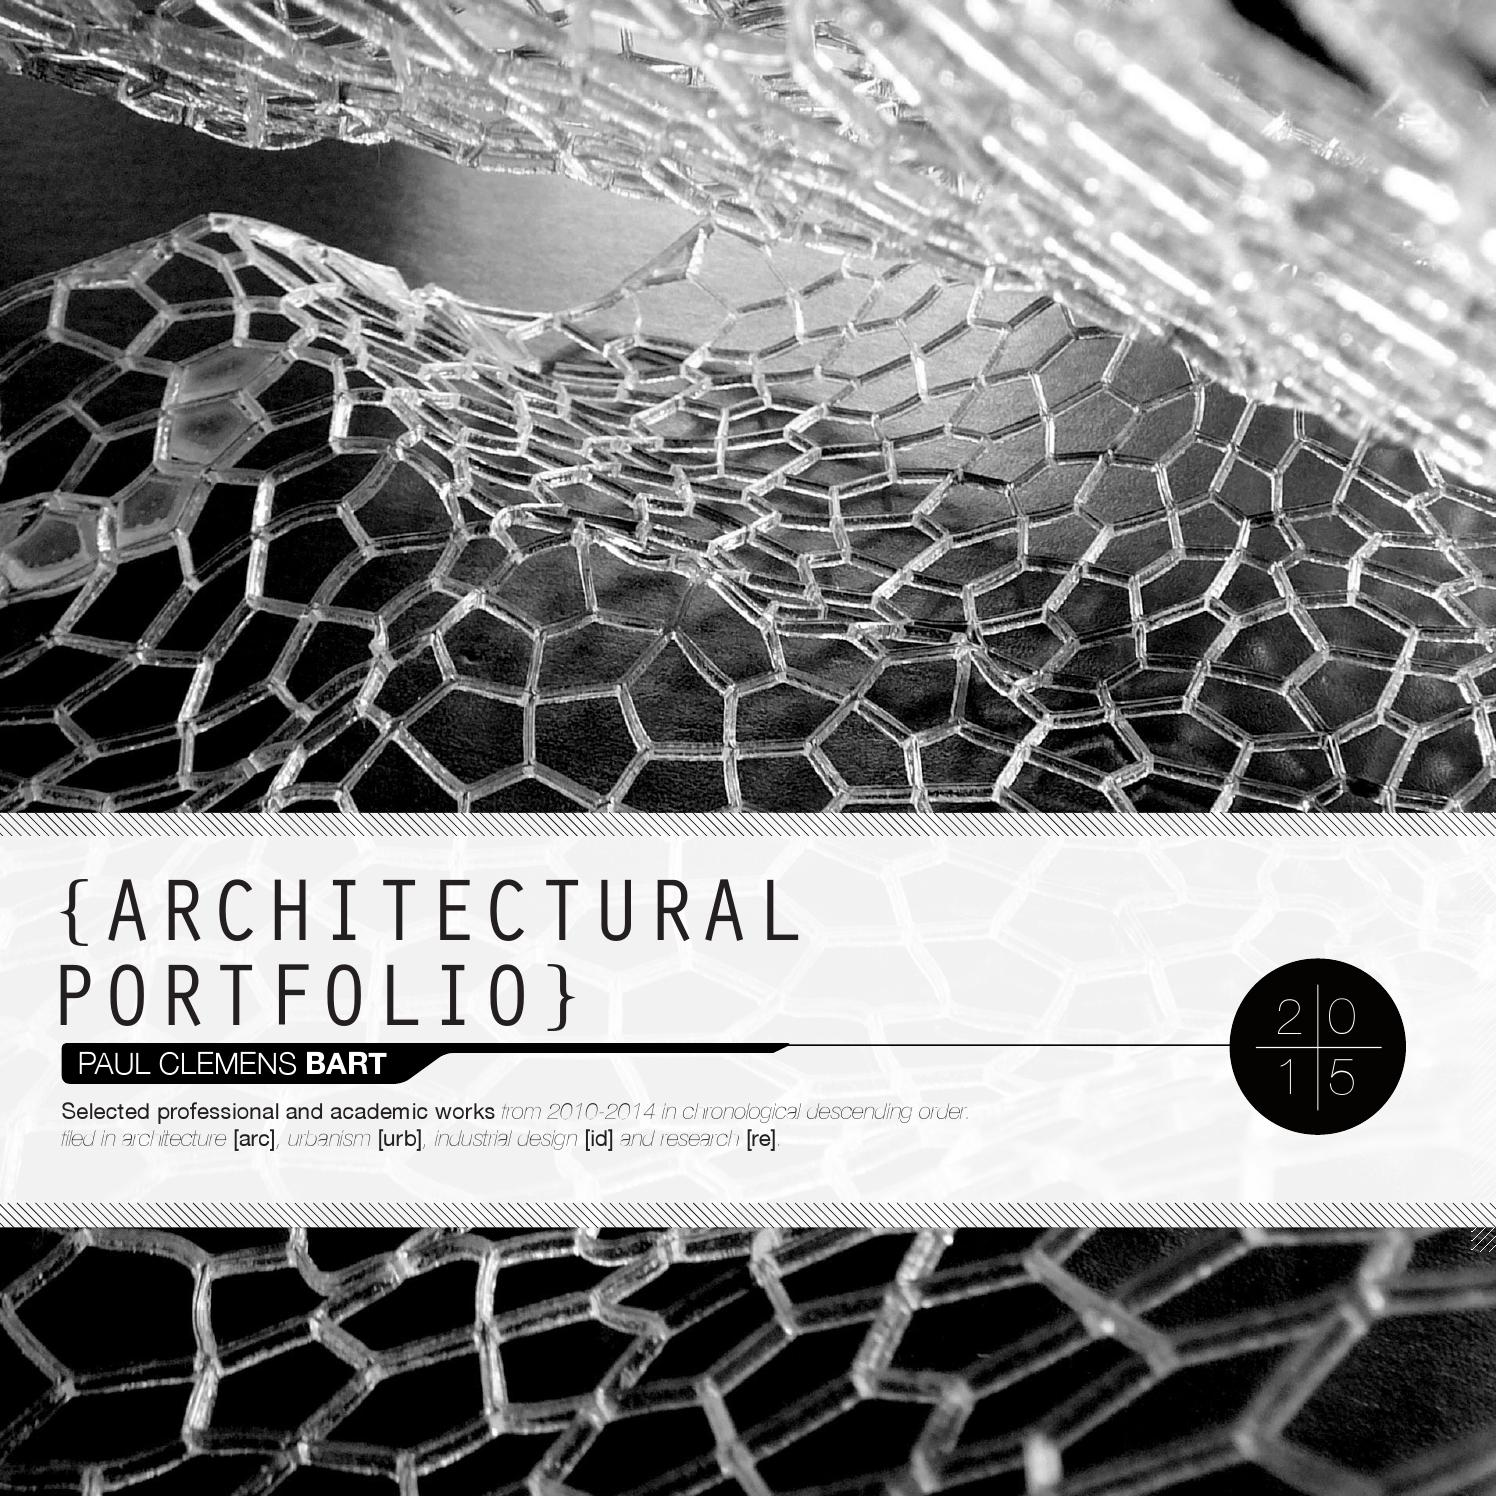 PAUL CLEMENS BART ARCHITECTURAL PORTFOLIO by Paul Clemens Bart issuu